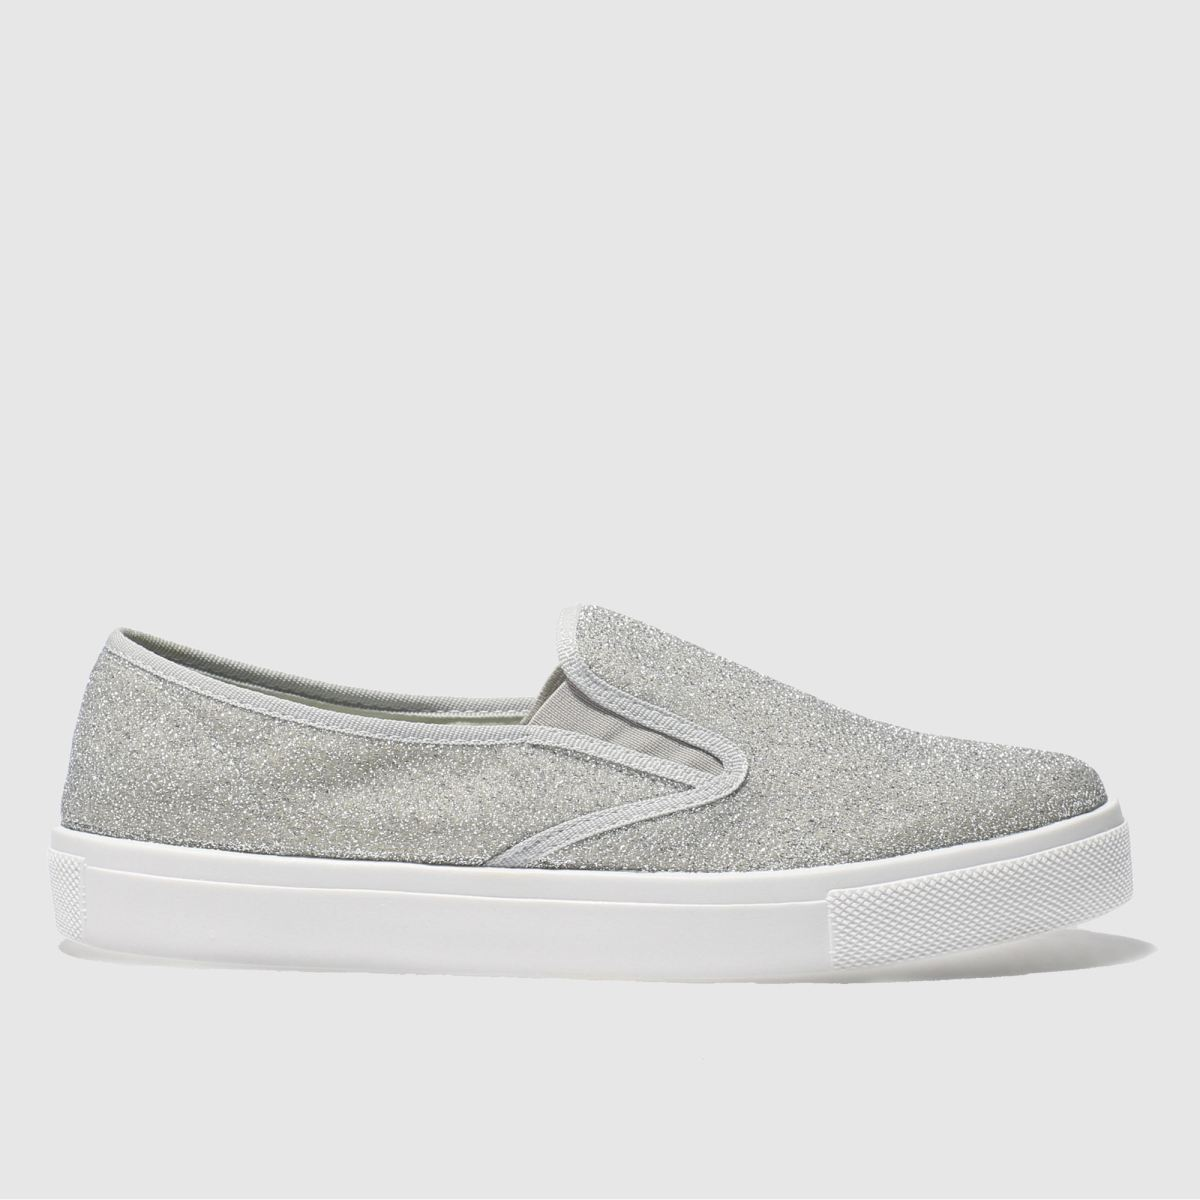 Schuh Silver Awesome Flat Shoes